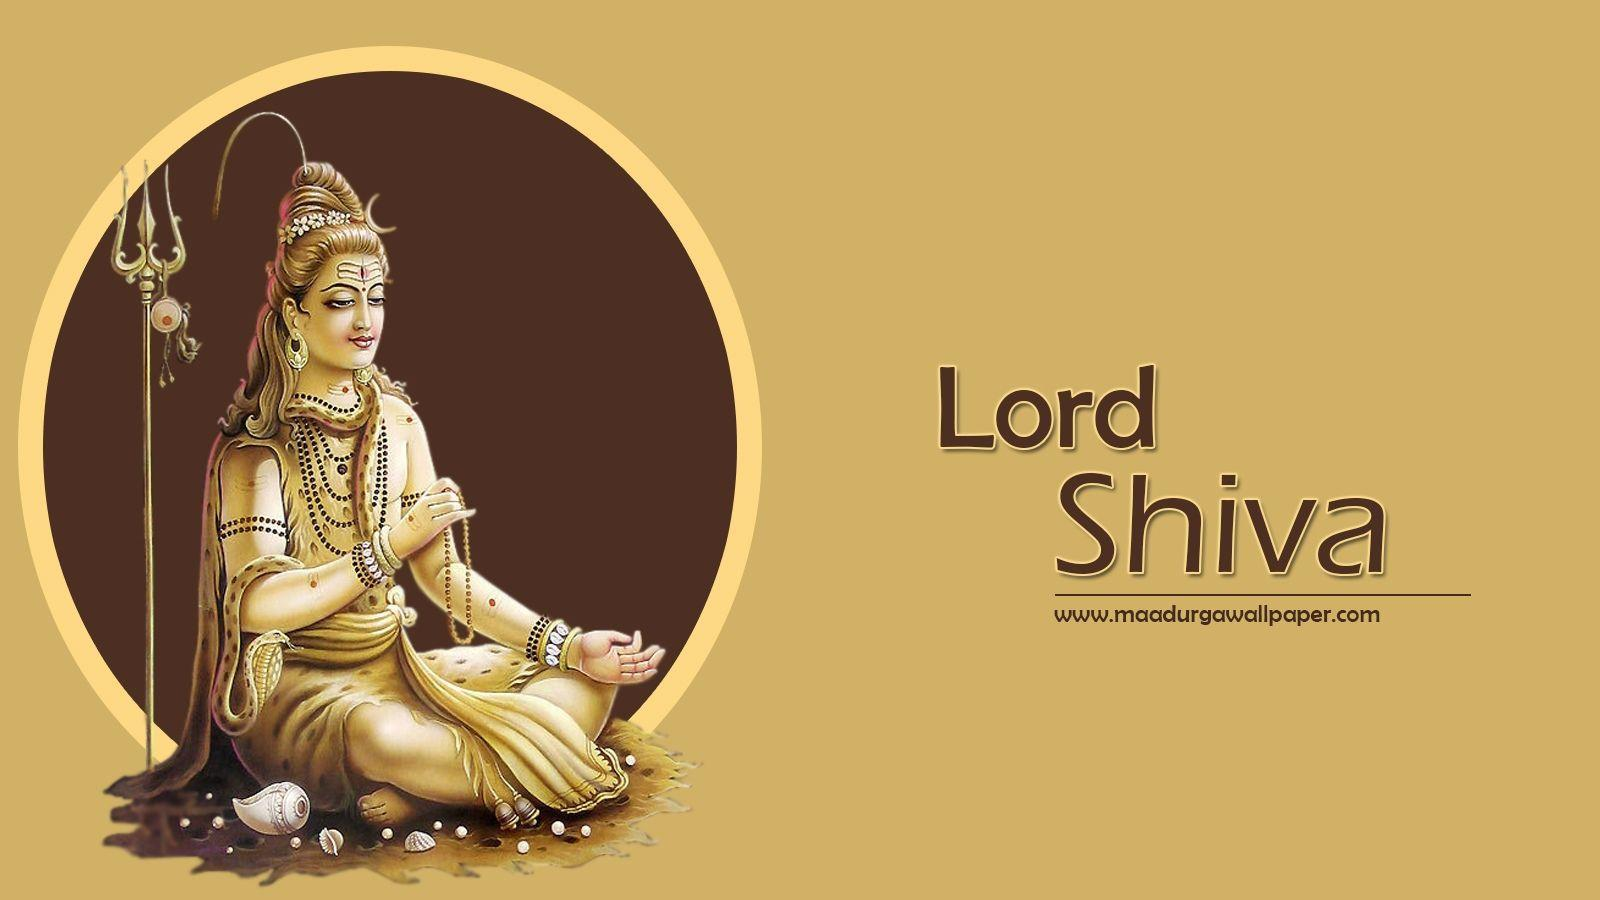 Lord Shiva Wallpapers Hd 4k 1 1 Apk Download: Lord Shiva Wallpapers